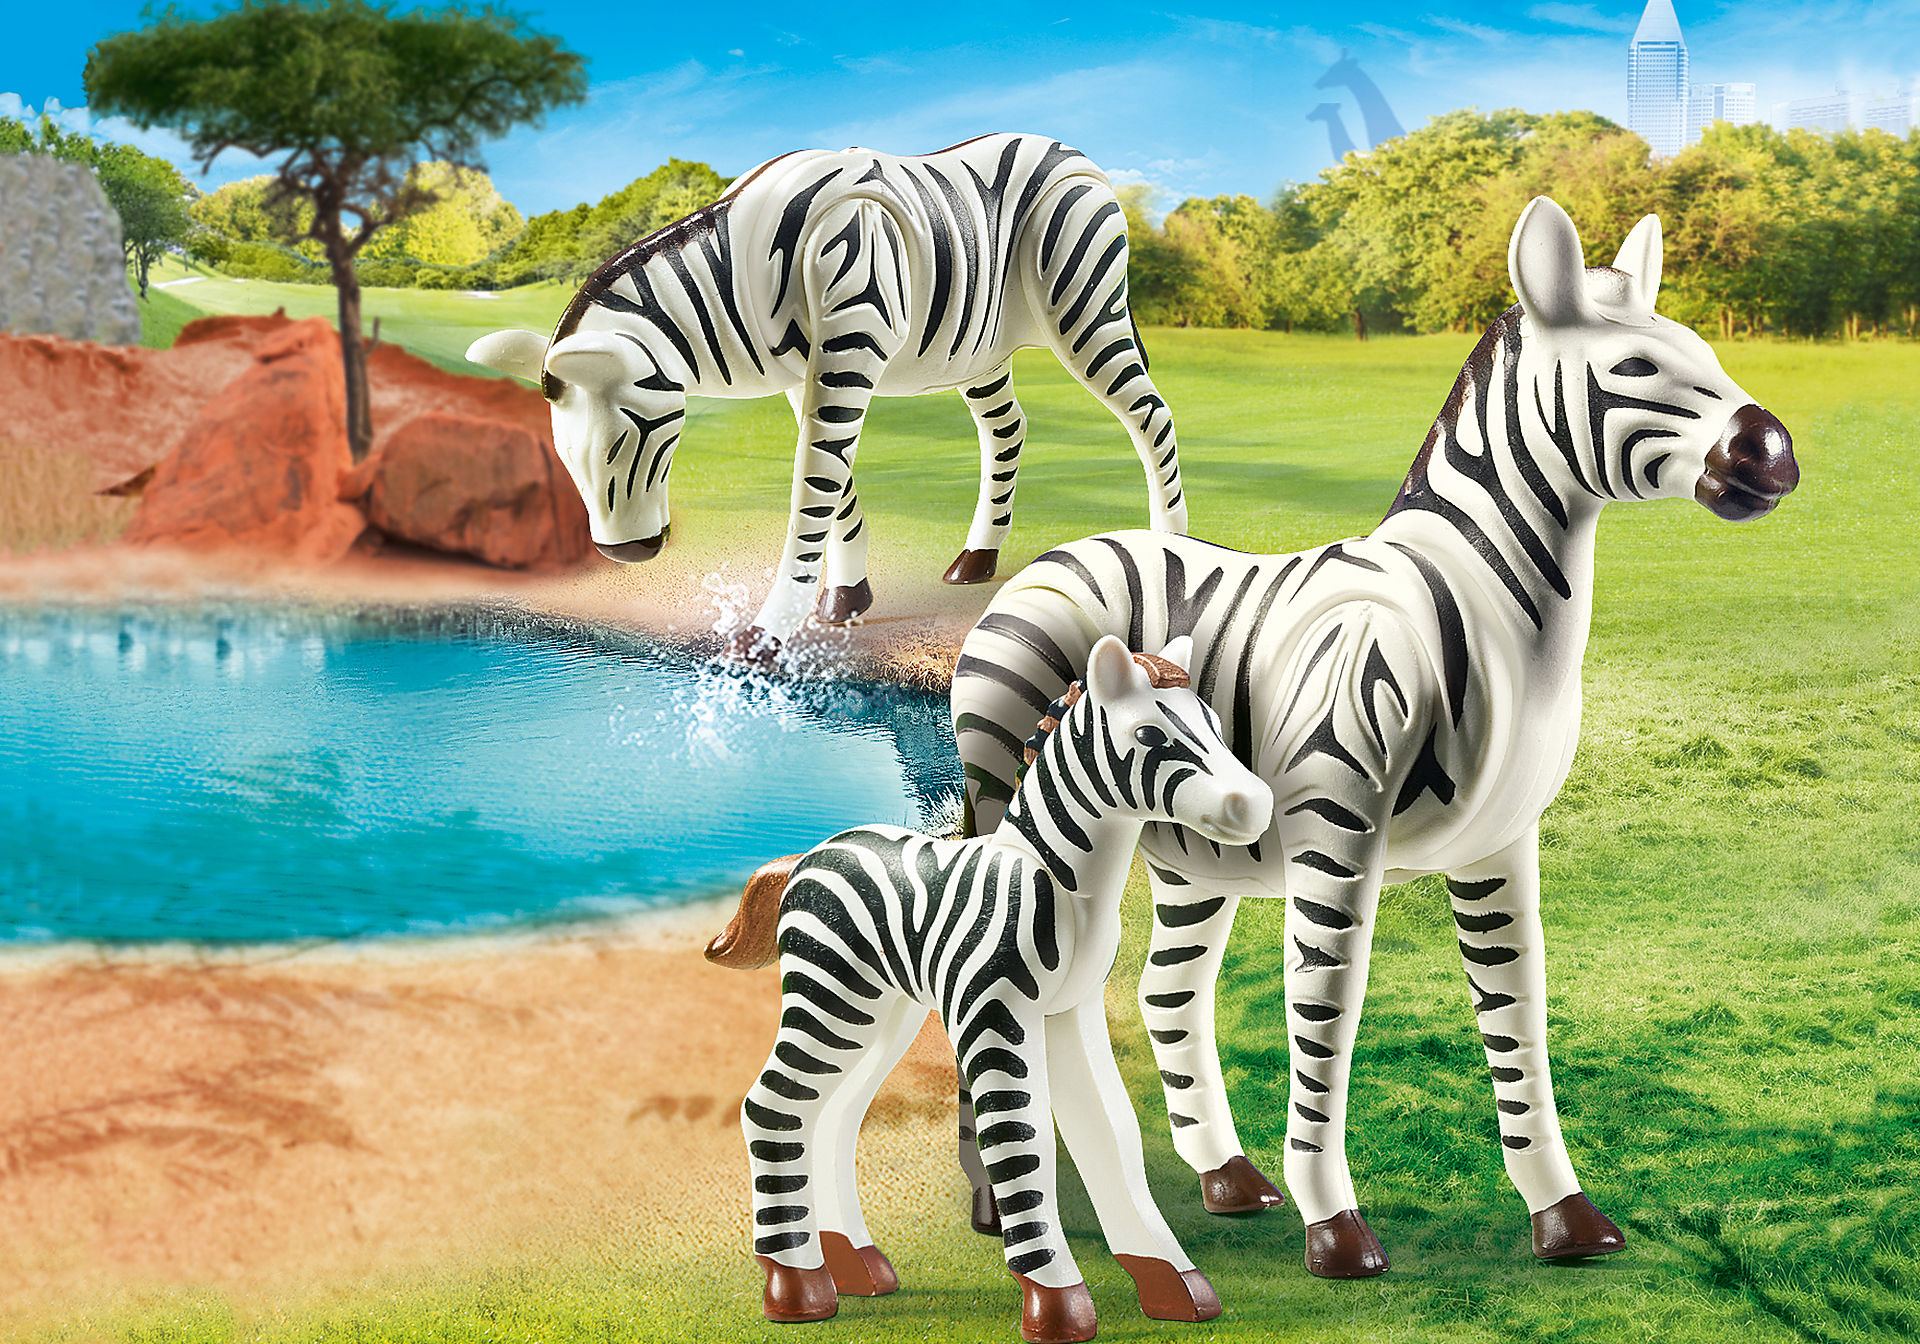 70356 Zebras with Foal zoom image1